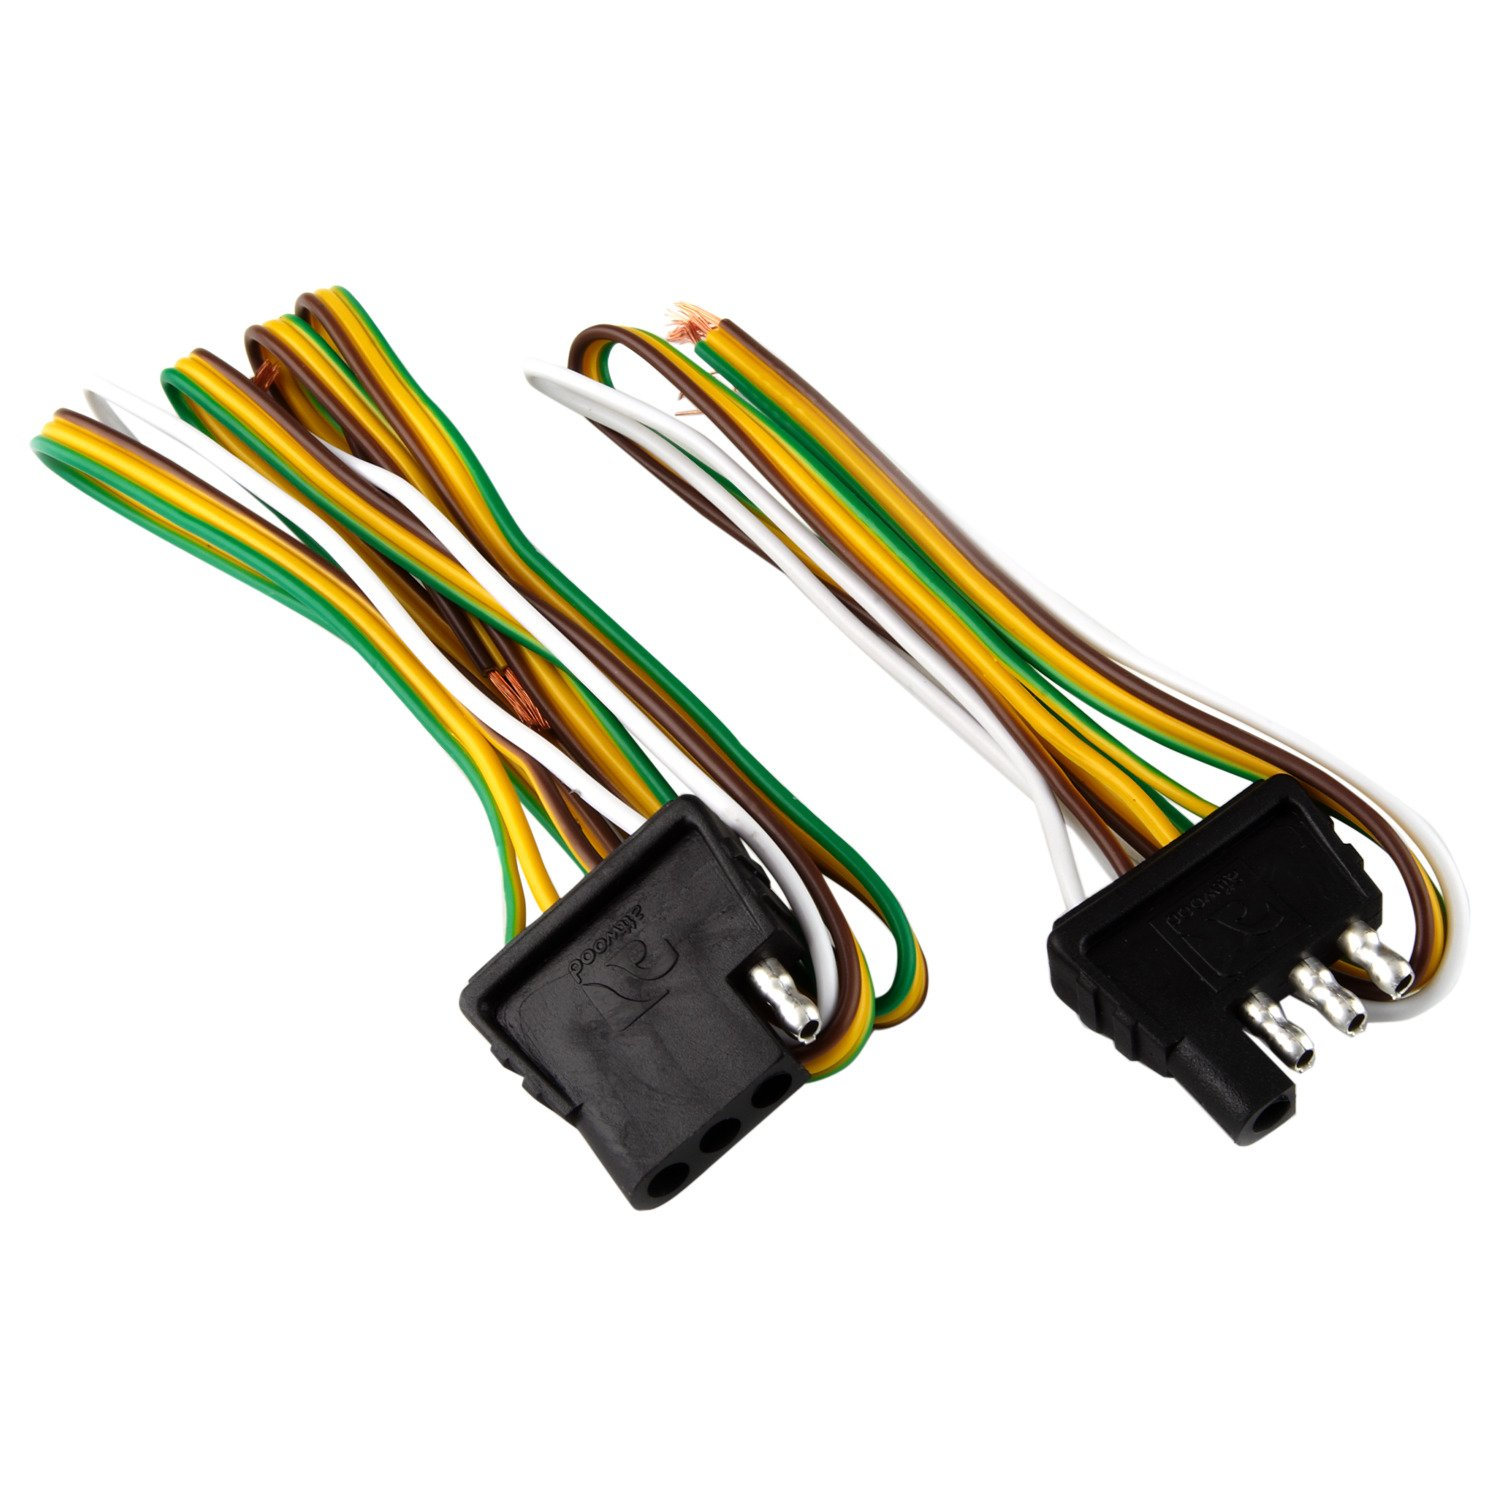 small resolution of attwood 4 way flat wiring harness kit for vehicles and trailers 4 flat wiring harness